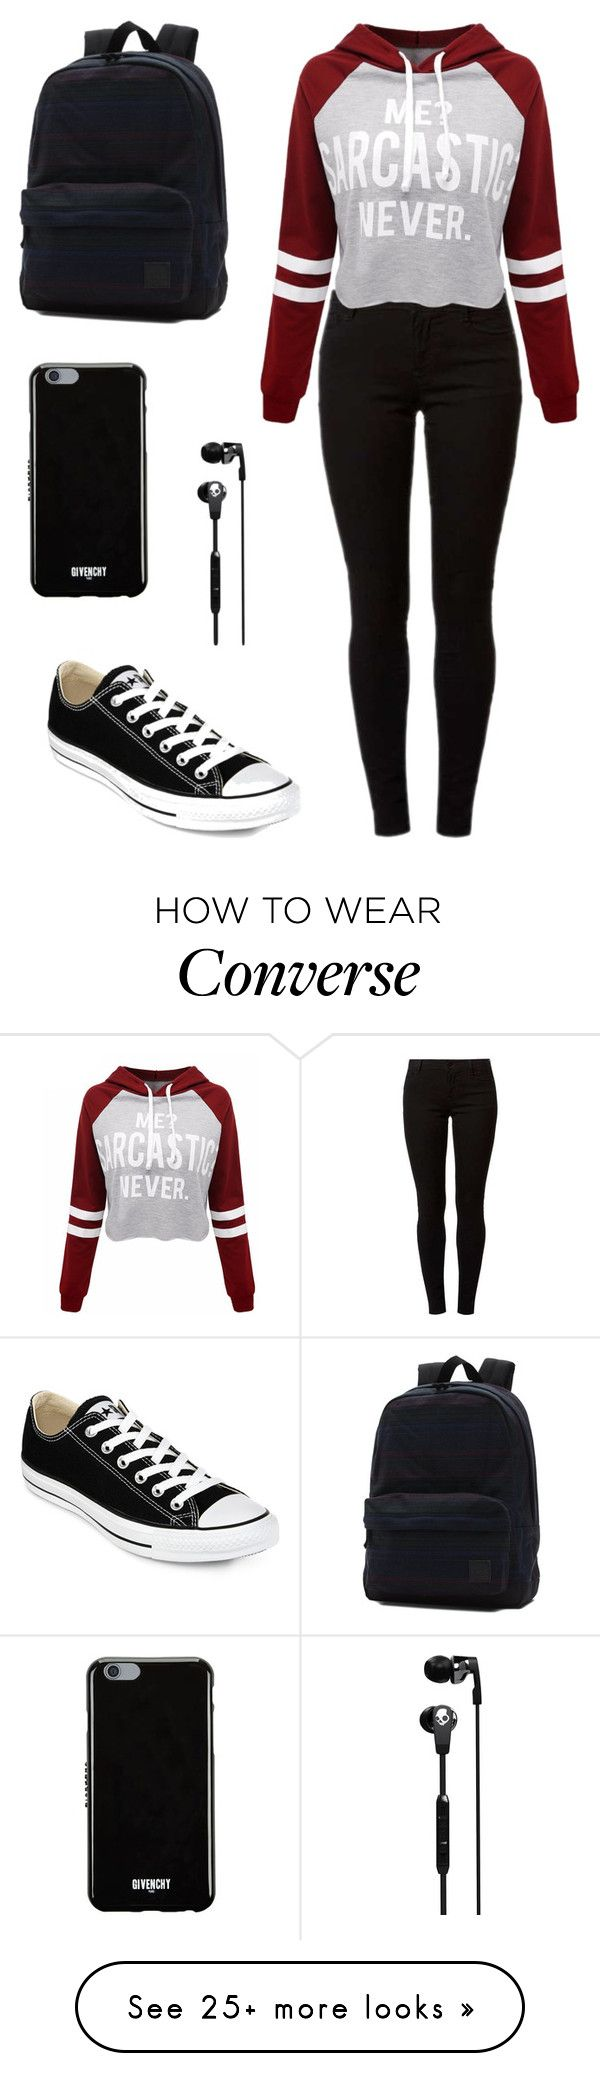 """""""Untitled #5"""" by amela-ella-hodzic on Polyvore featuring Dorothy Perkins, WithChic, Converse, Vans, Skullcandy and Givenchy"""